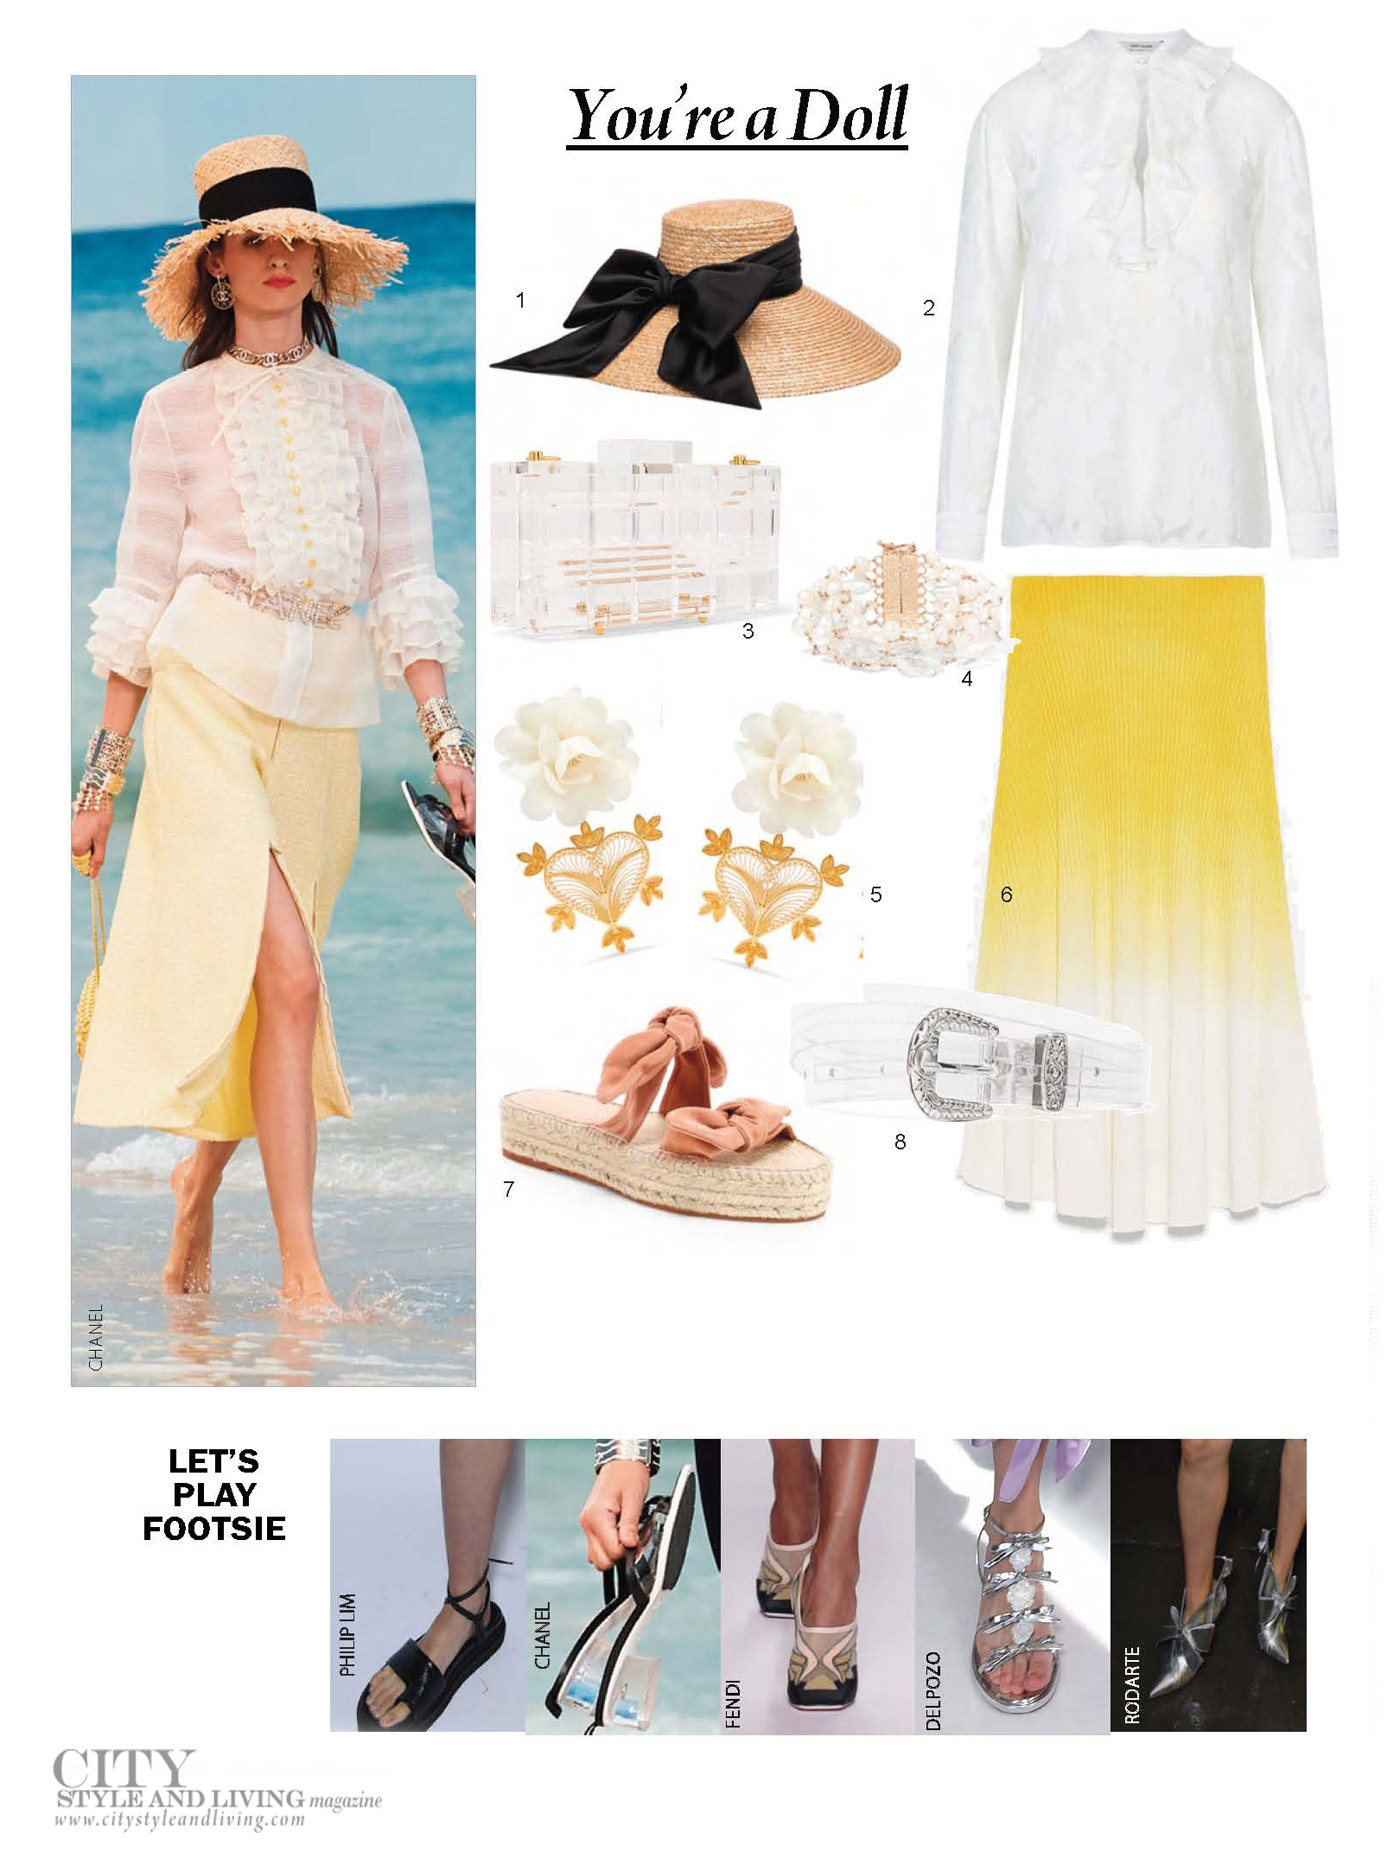 City Style and Living Magazine Spring 2019 Fashion Trends frills and flatforms